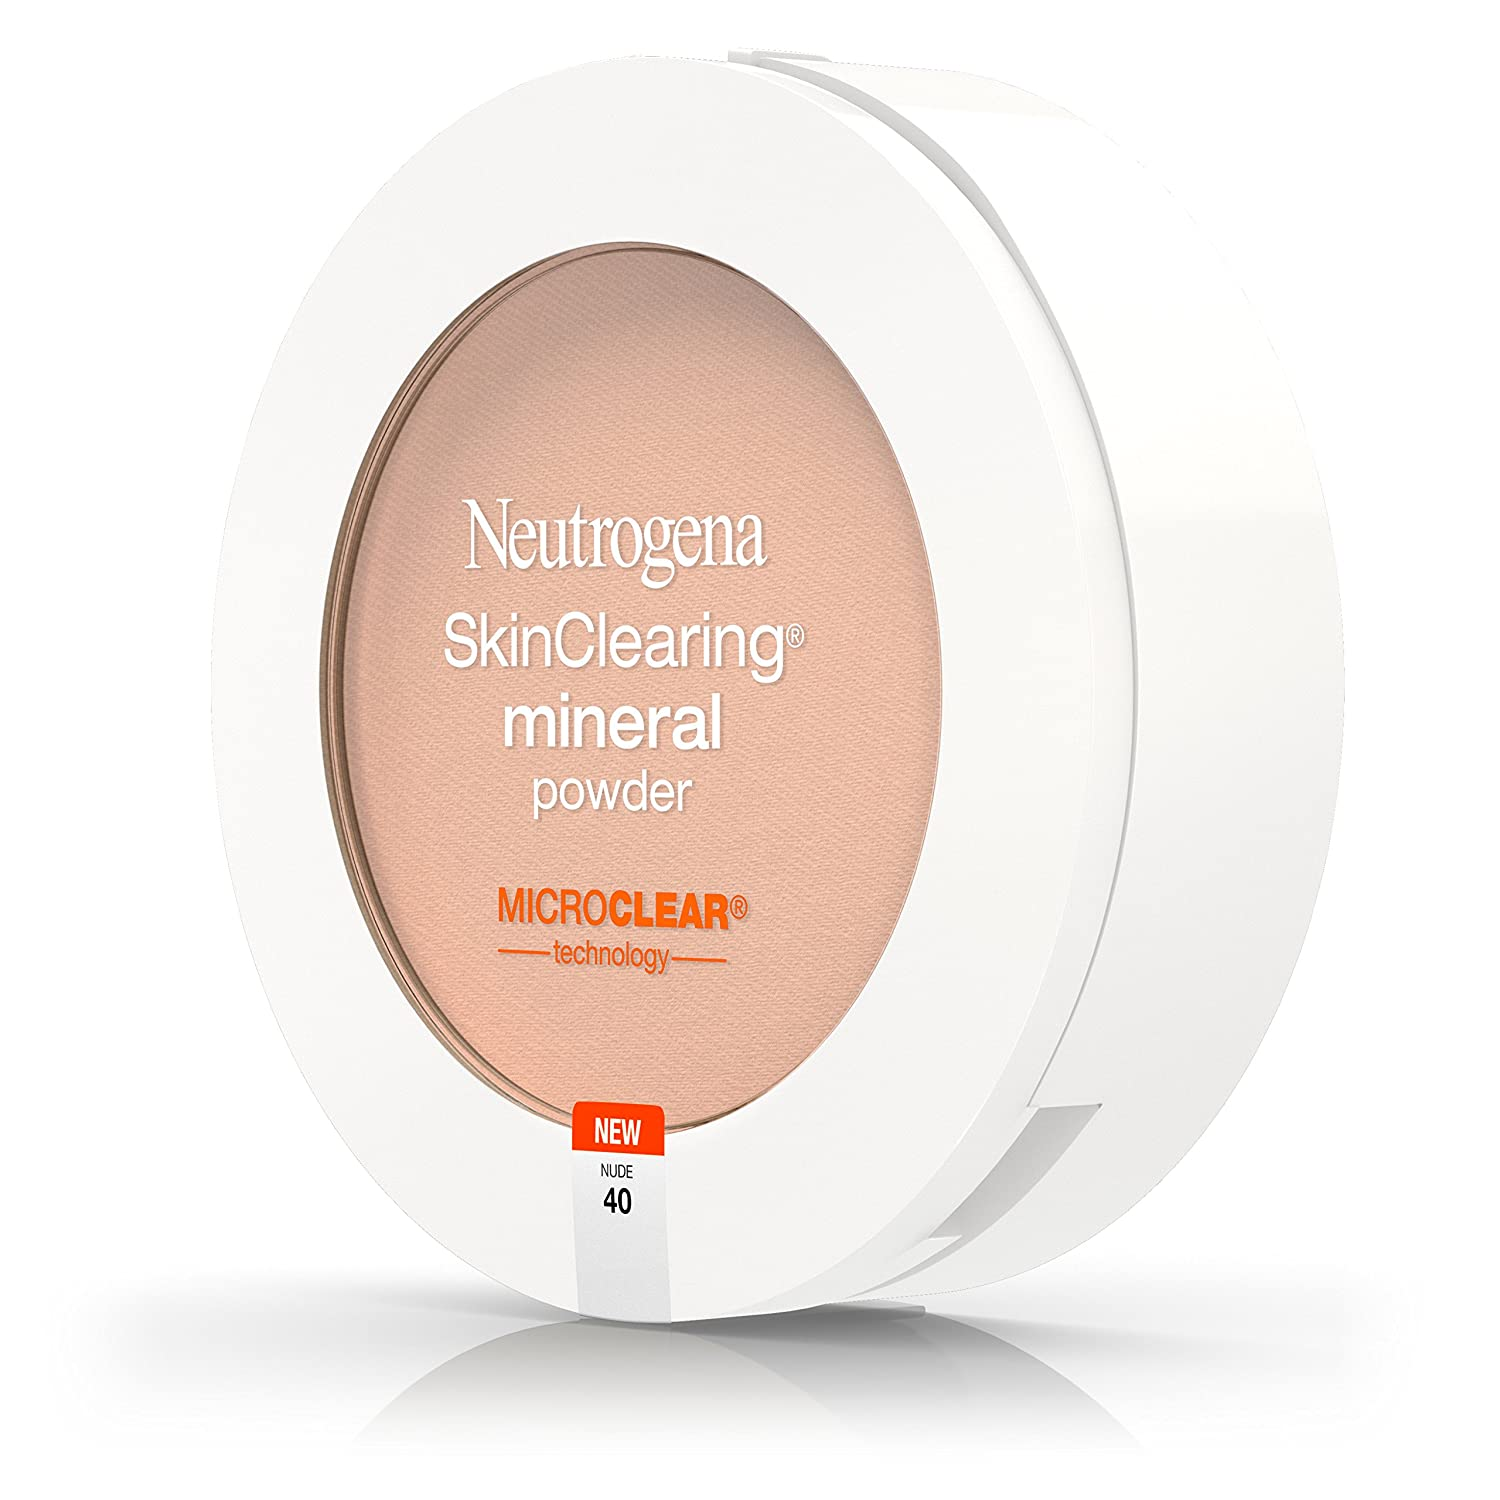 Amazon.com : Neutrogena Skinclearing Mineral Powder, Nude 40, .38 Oz. (Pack of 2) : Beauty